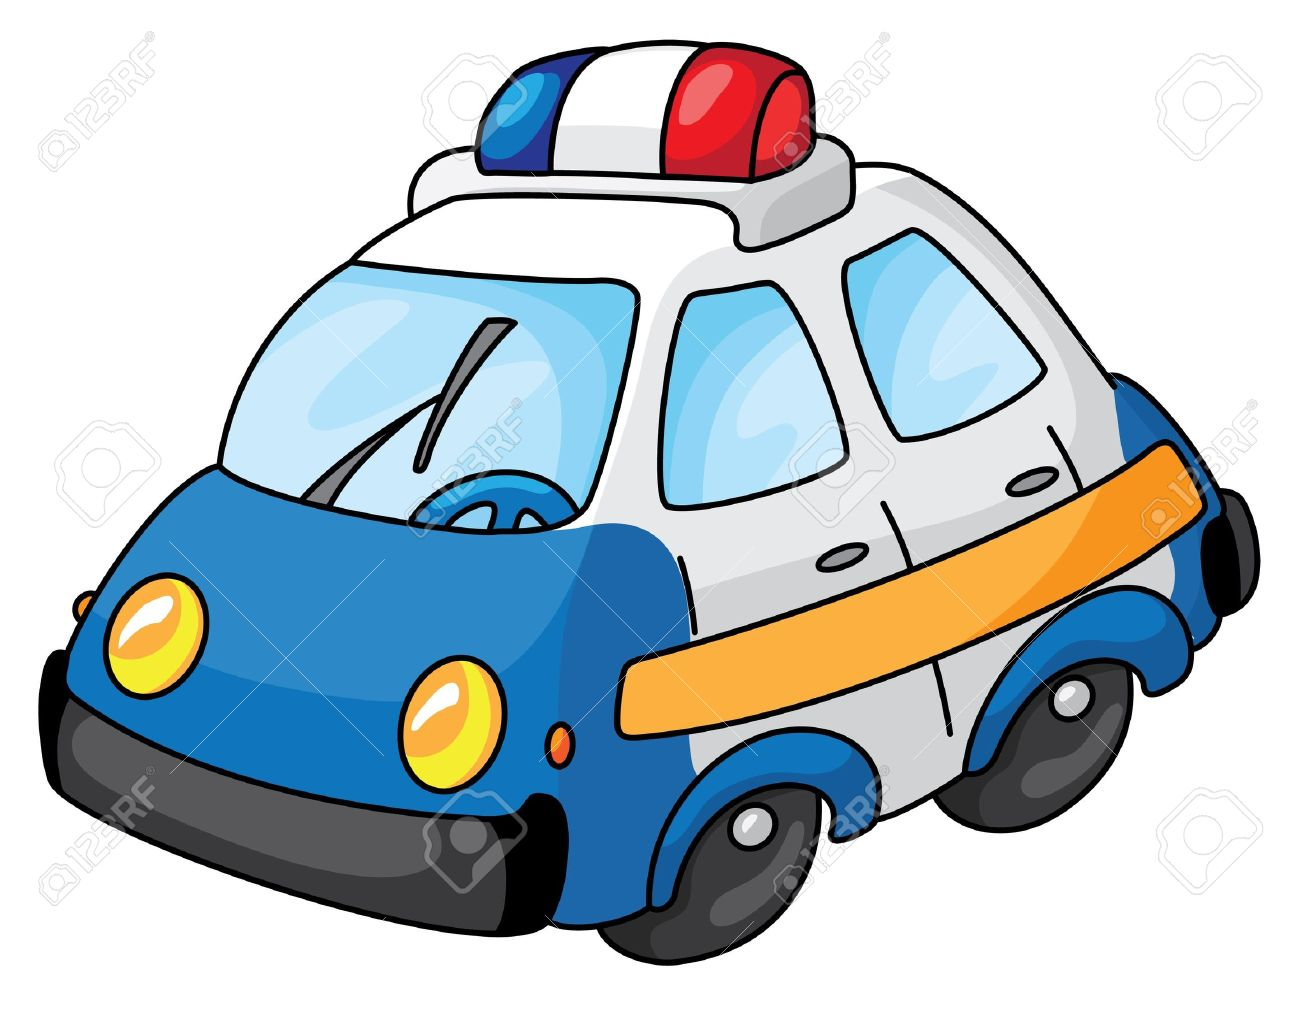 police car stock photos u0026 pictures royalty free police car images